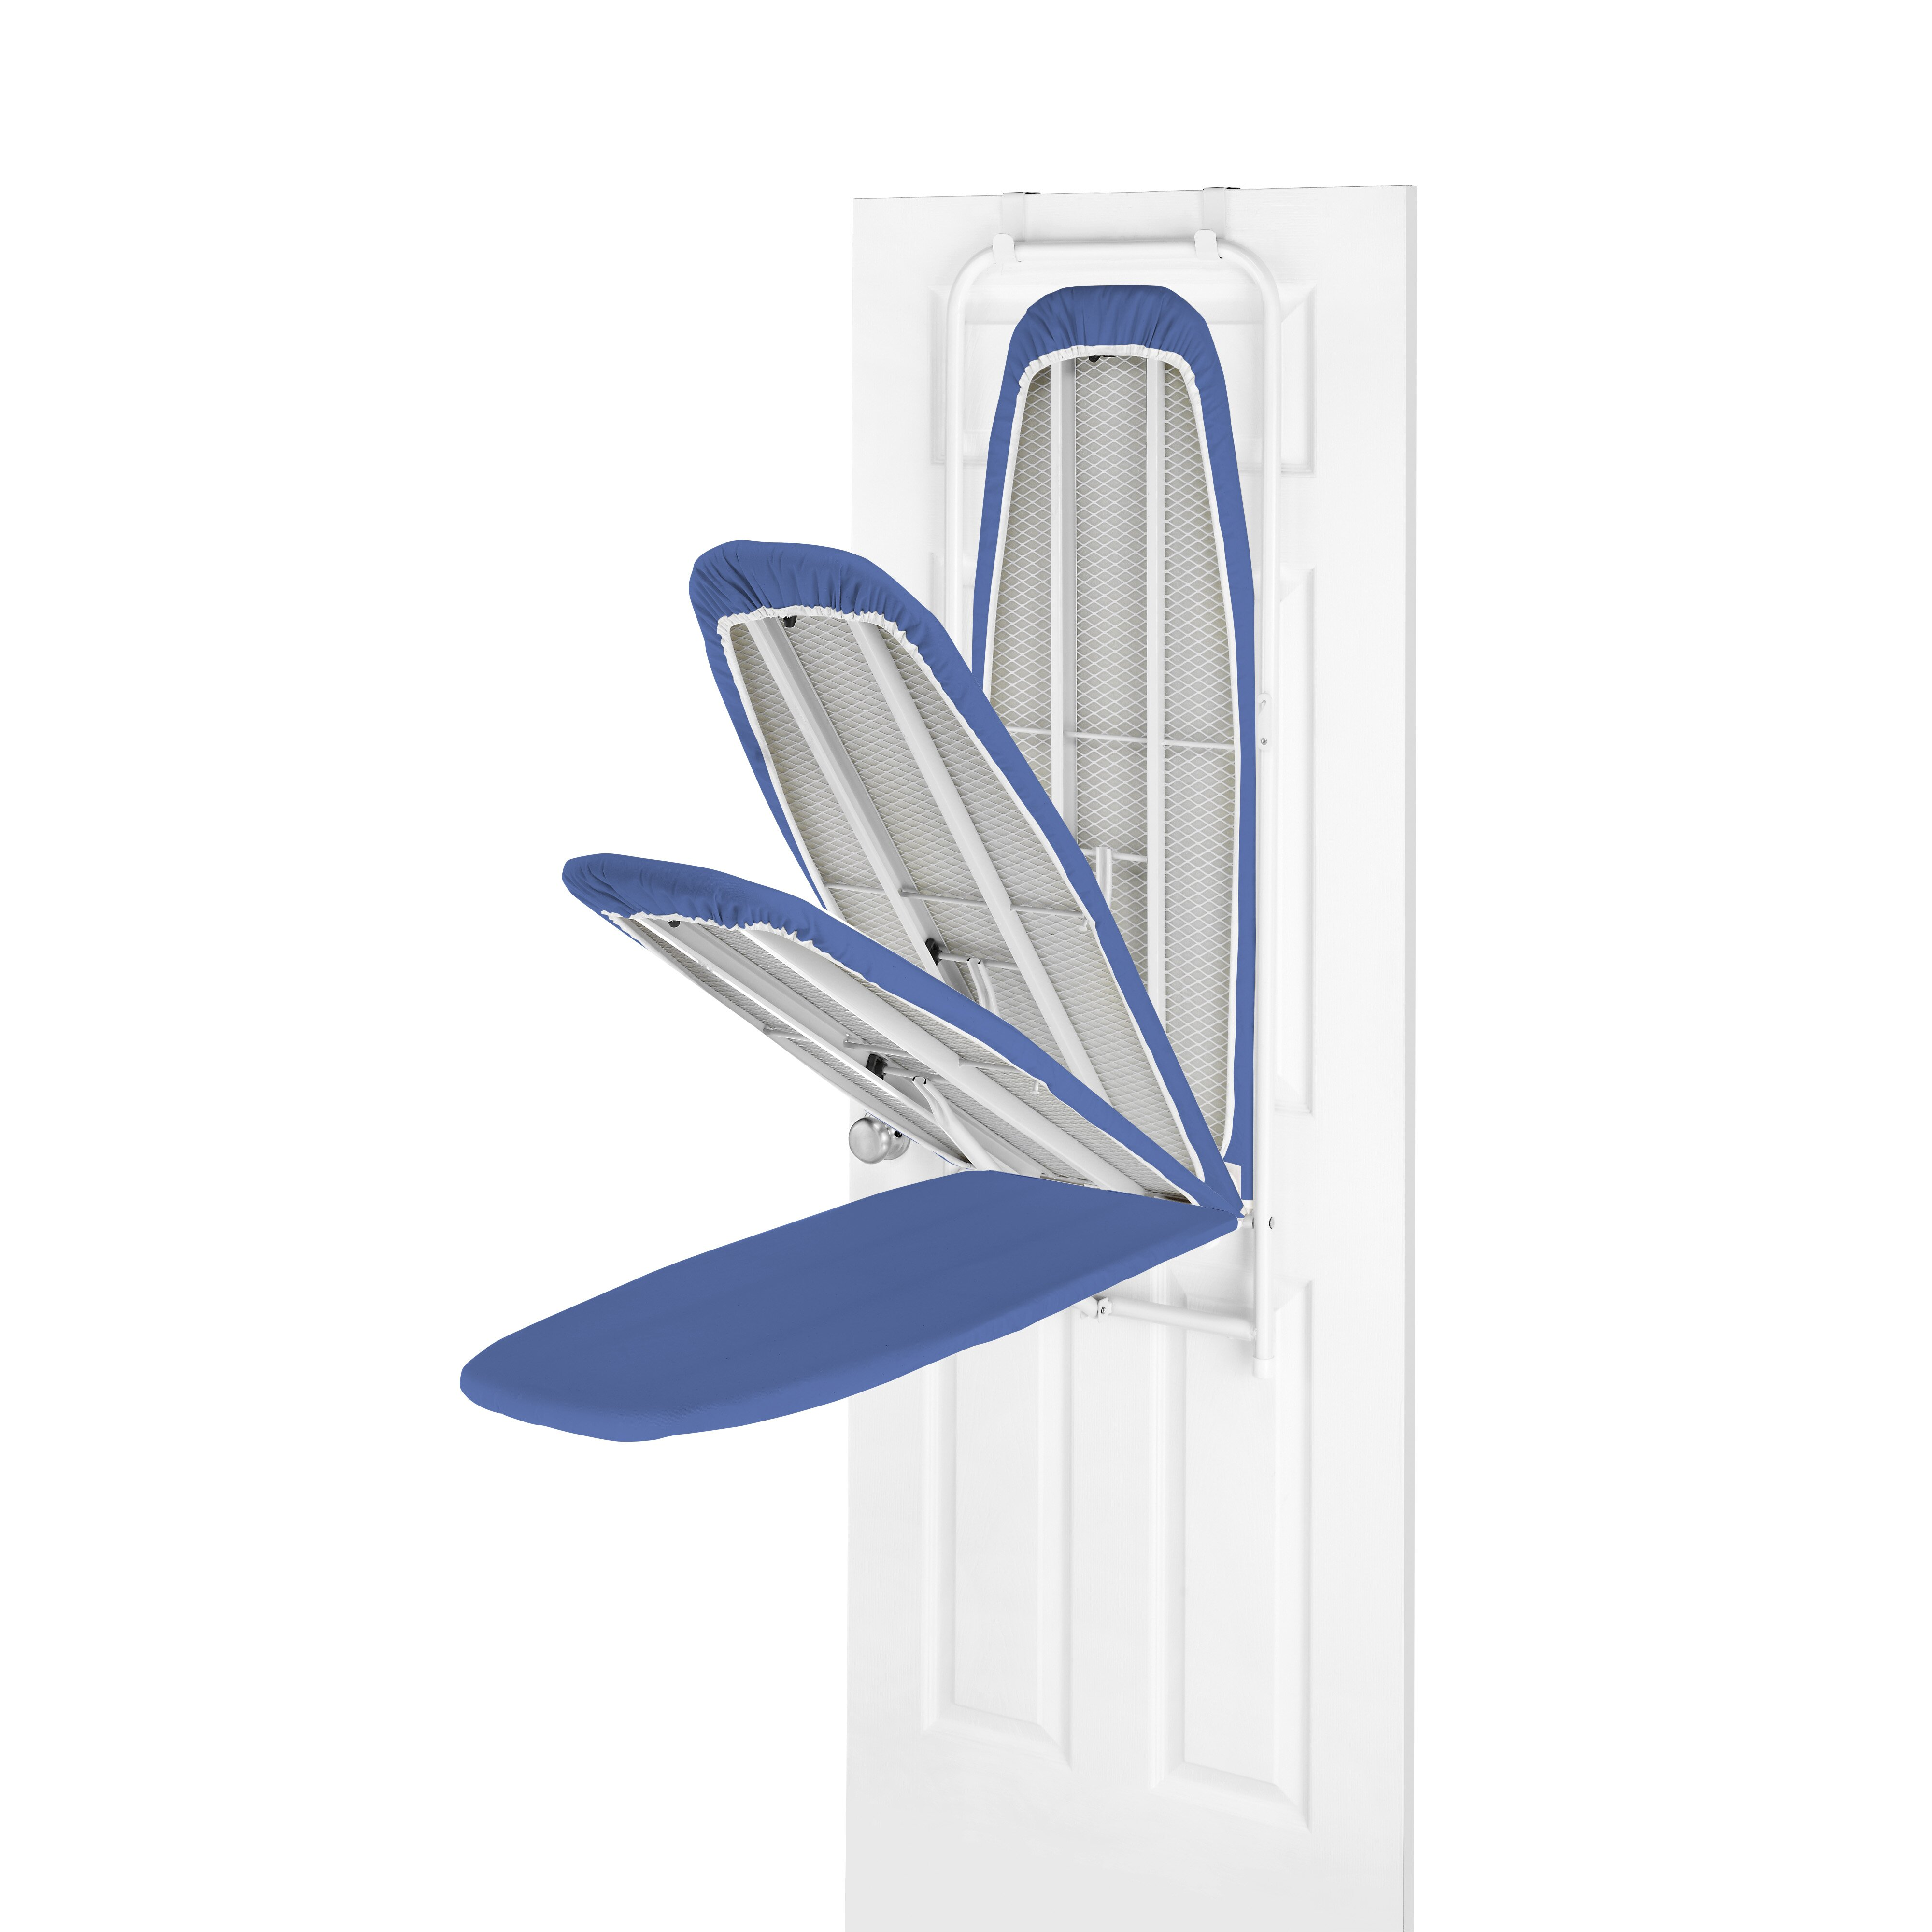 the door ironing board cover